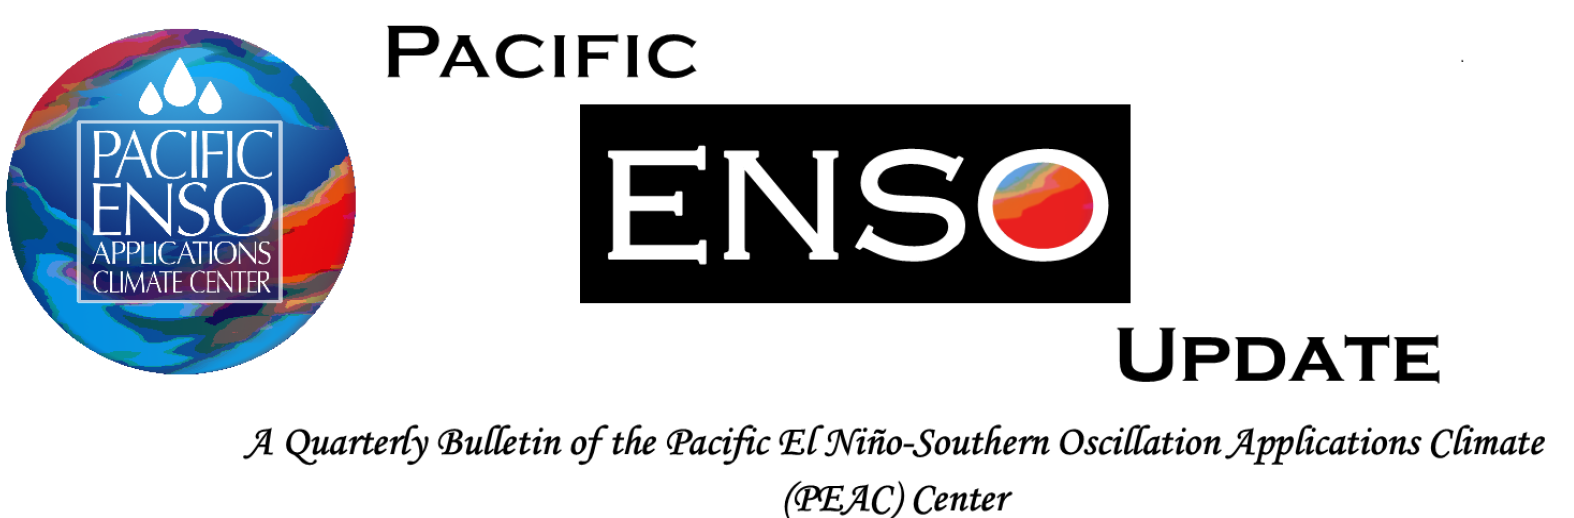 Pacific ENSO Update